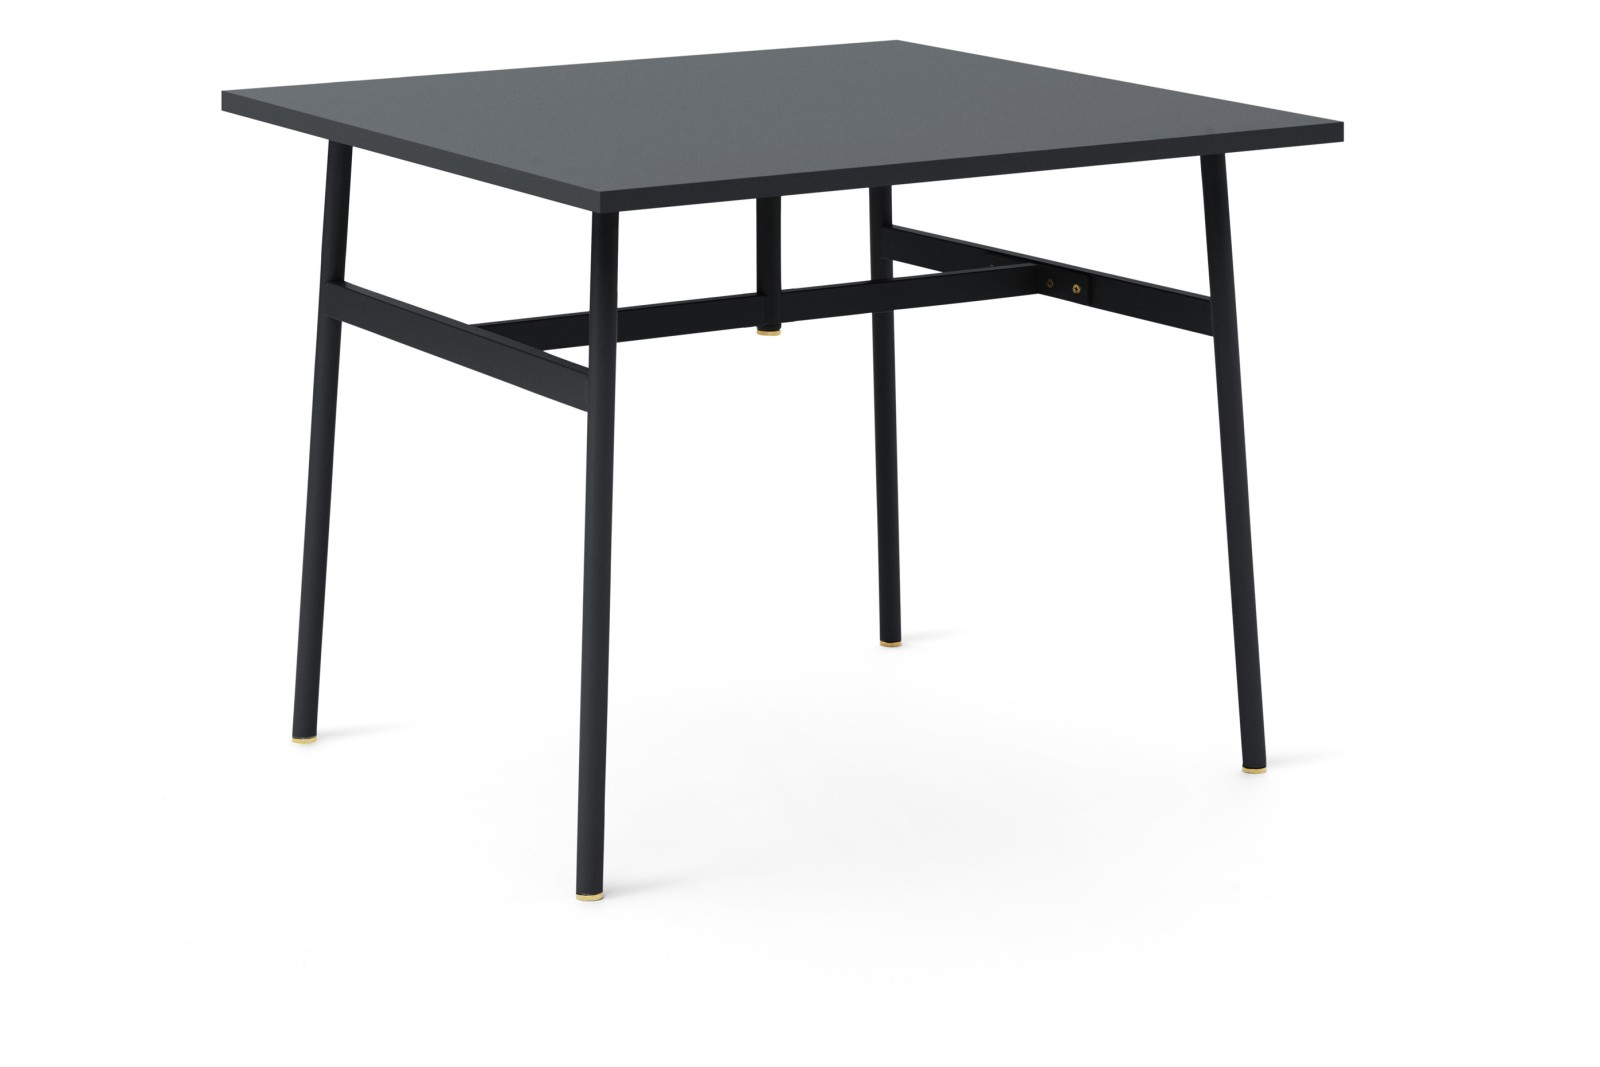 Union Rectangular Dining Table Black, 90